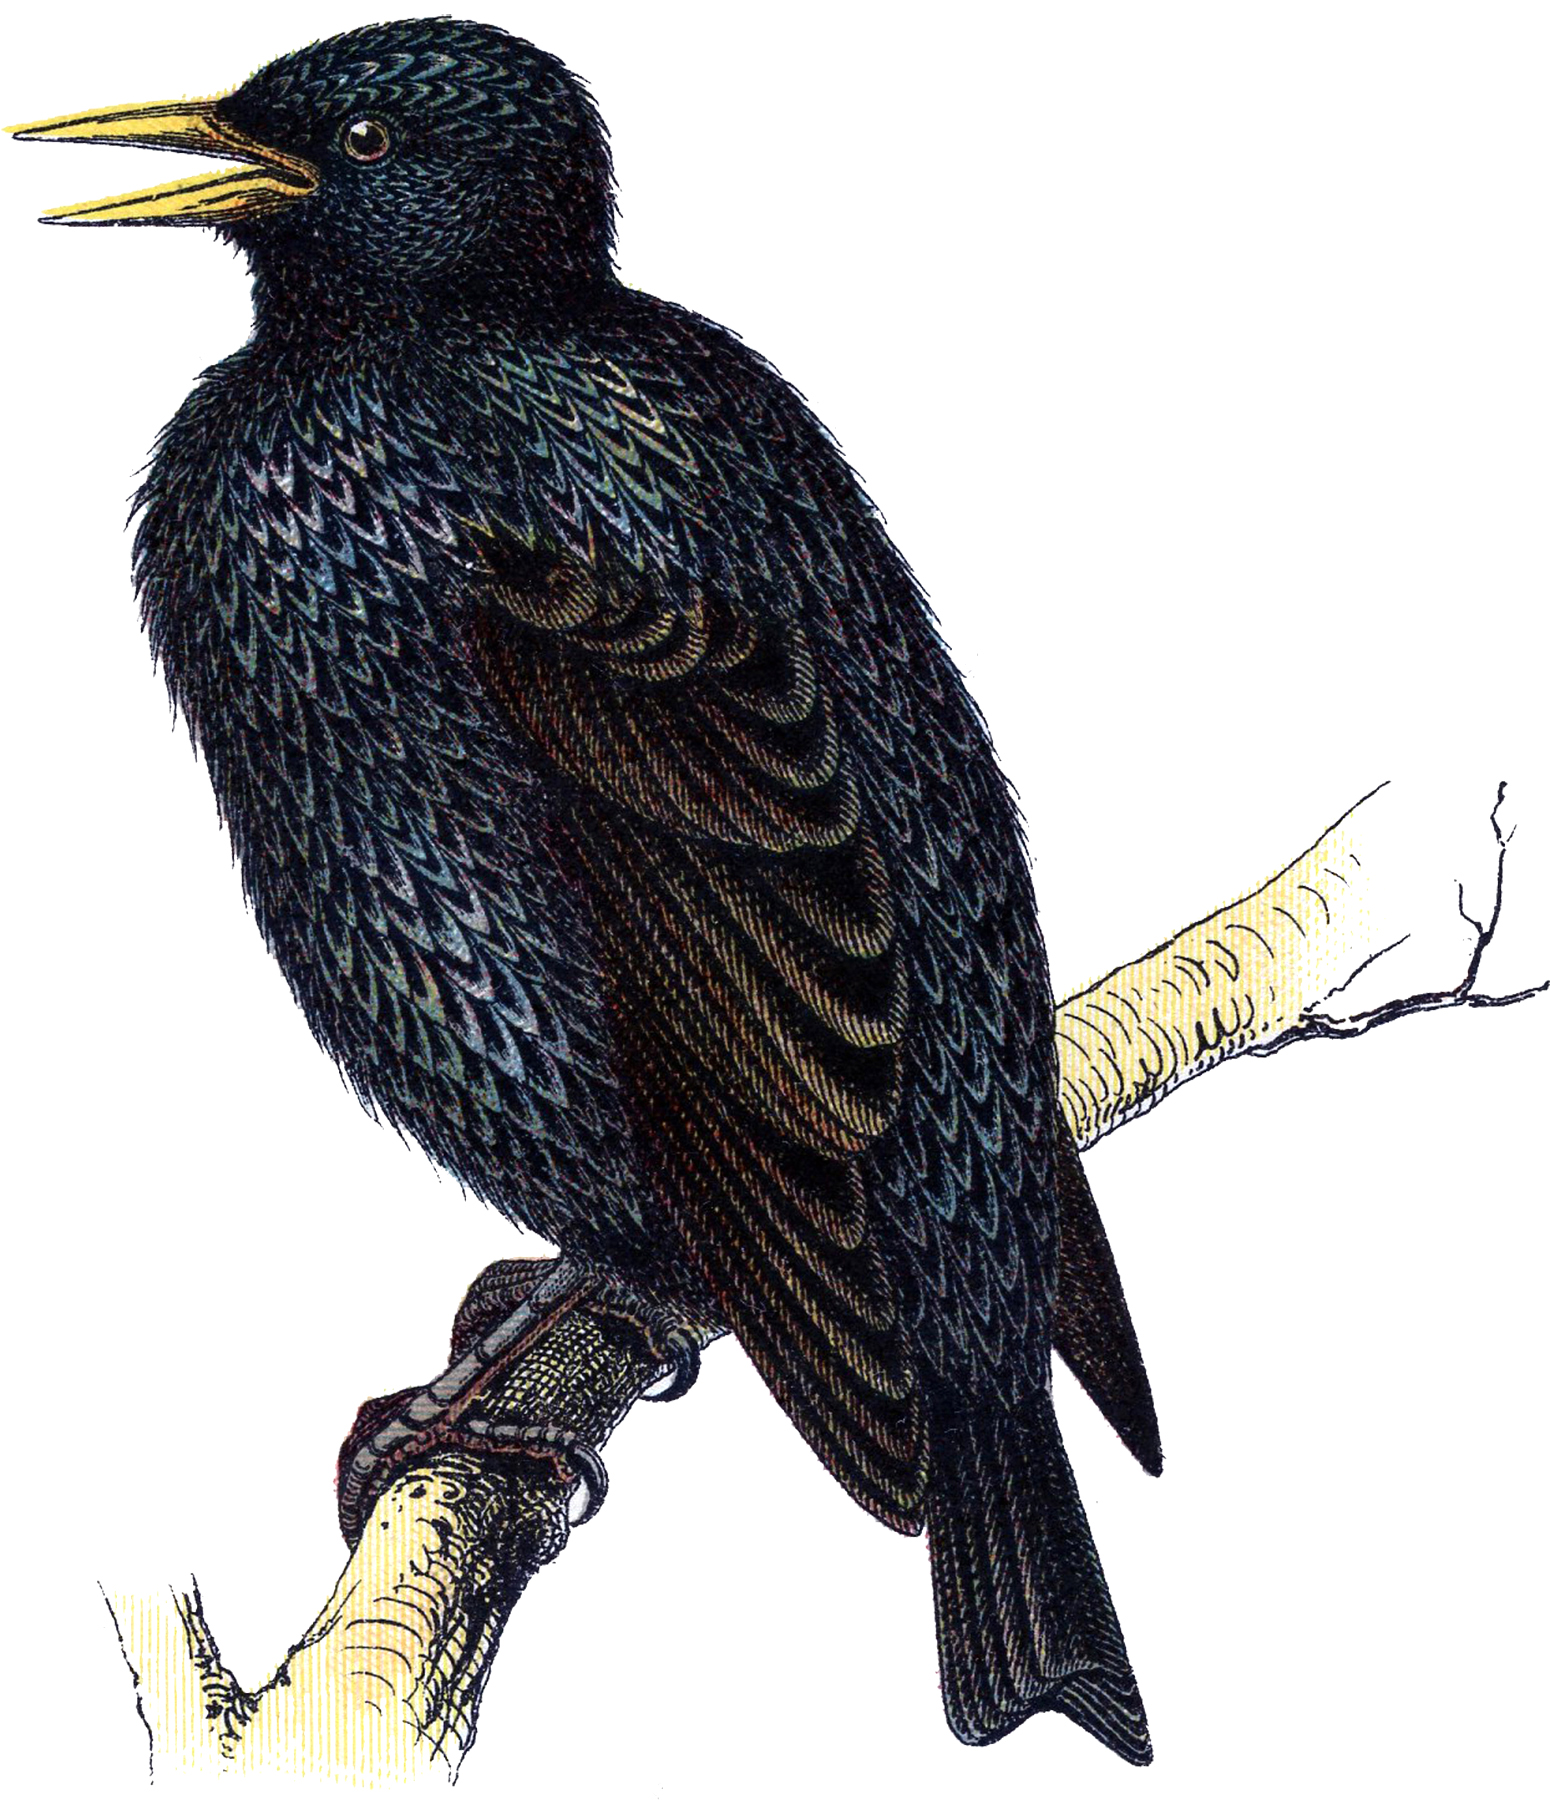 Wonderful Vintage Starling Bird Image!.